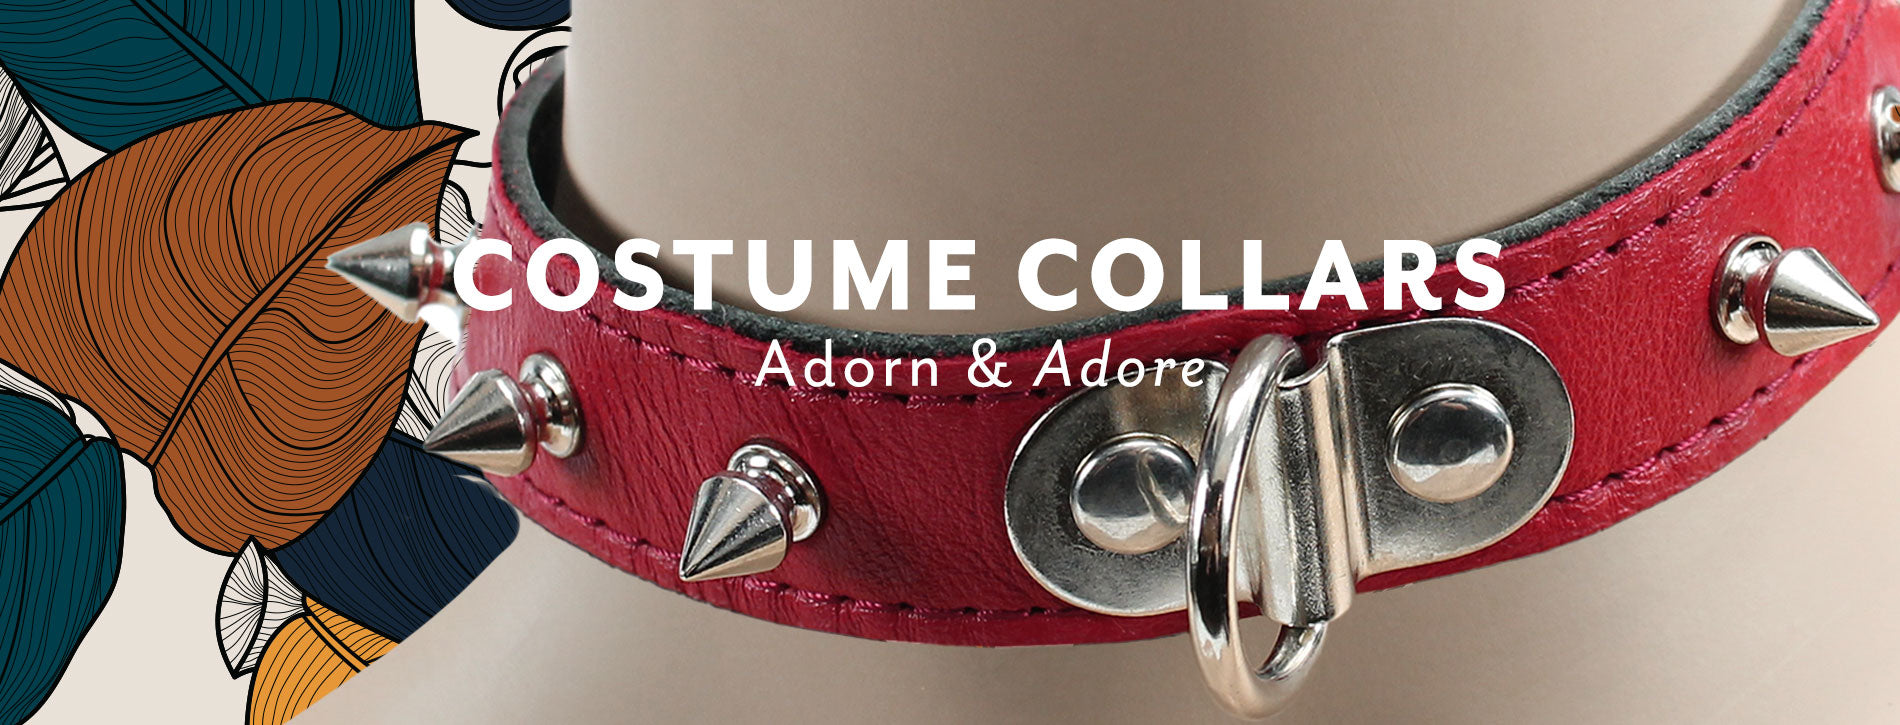 Luxury High-End Costume Play Collars